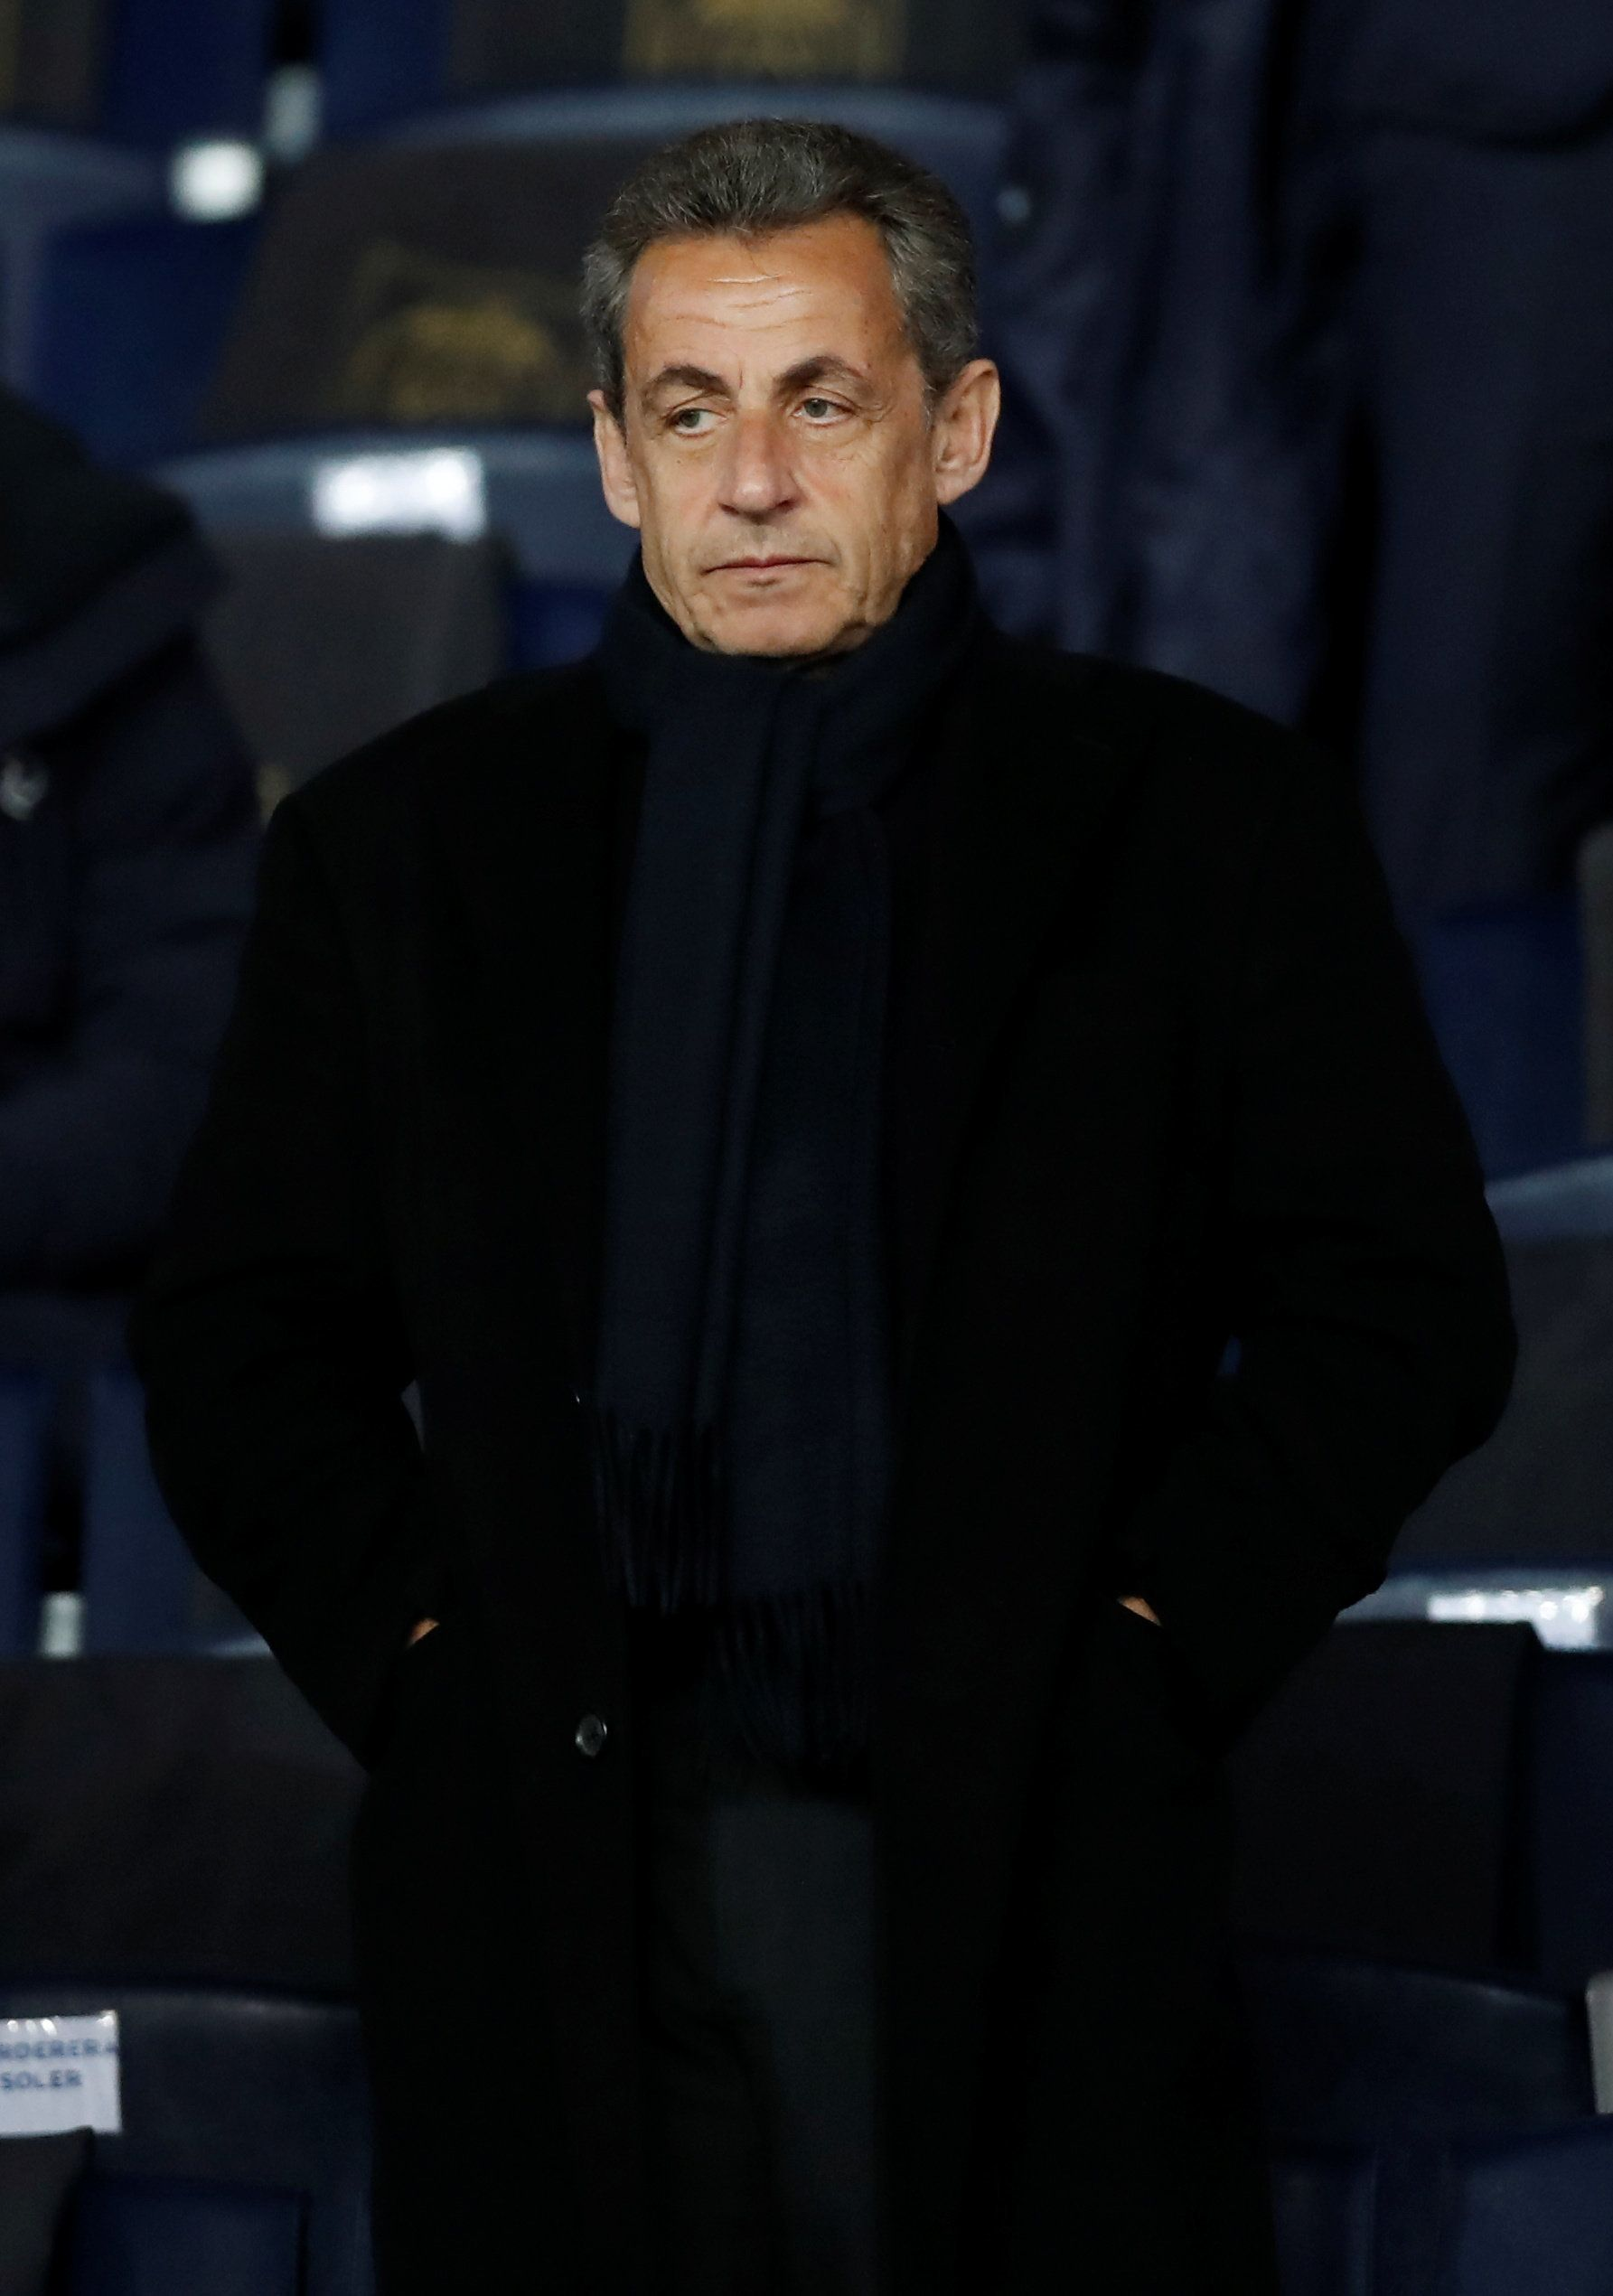 Soccer Football - Champions League Round of 16 Second Leg - Paris St Germain vs Real Madrid - Parc des Princes, Paris, France - March 6, 2018   Former President of France Nicolas Sarkozy in the stands   REUTERS/Gonzalo Fuentes